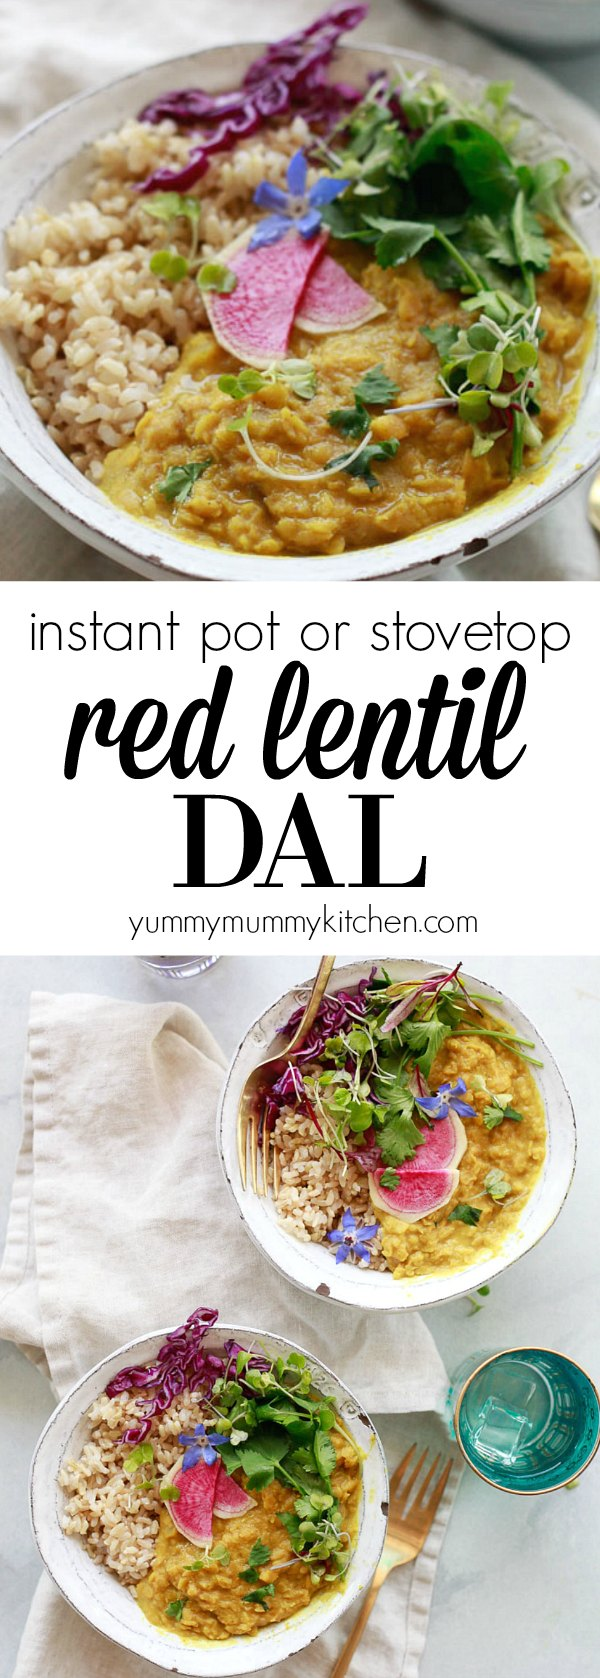 Easy red lentil dal recipe made with coconut milk. This red lentil or masoor dal is made on the stovetop or Instant Pot for an easy vegan dinner.